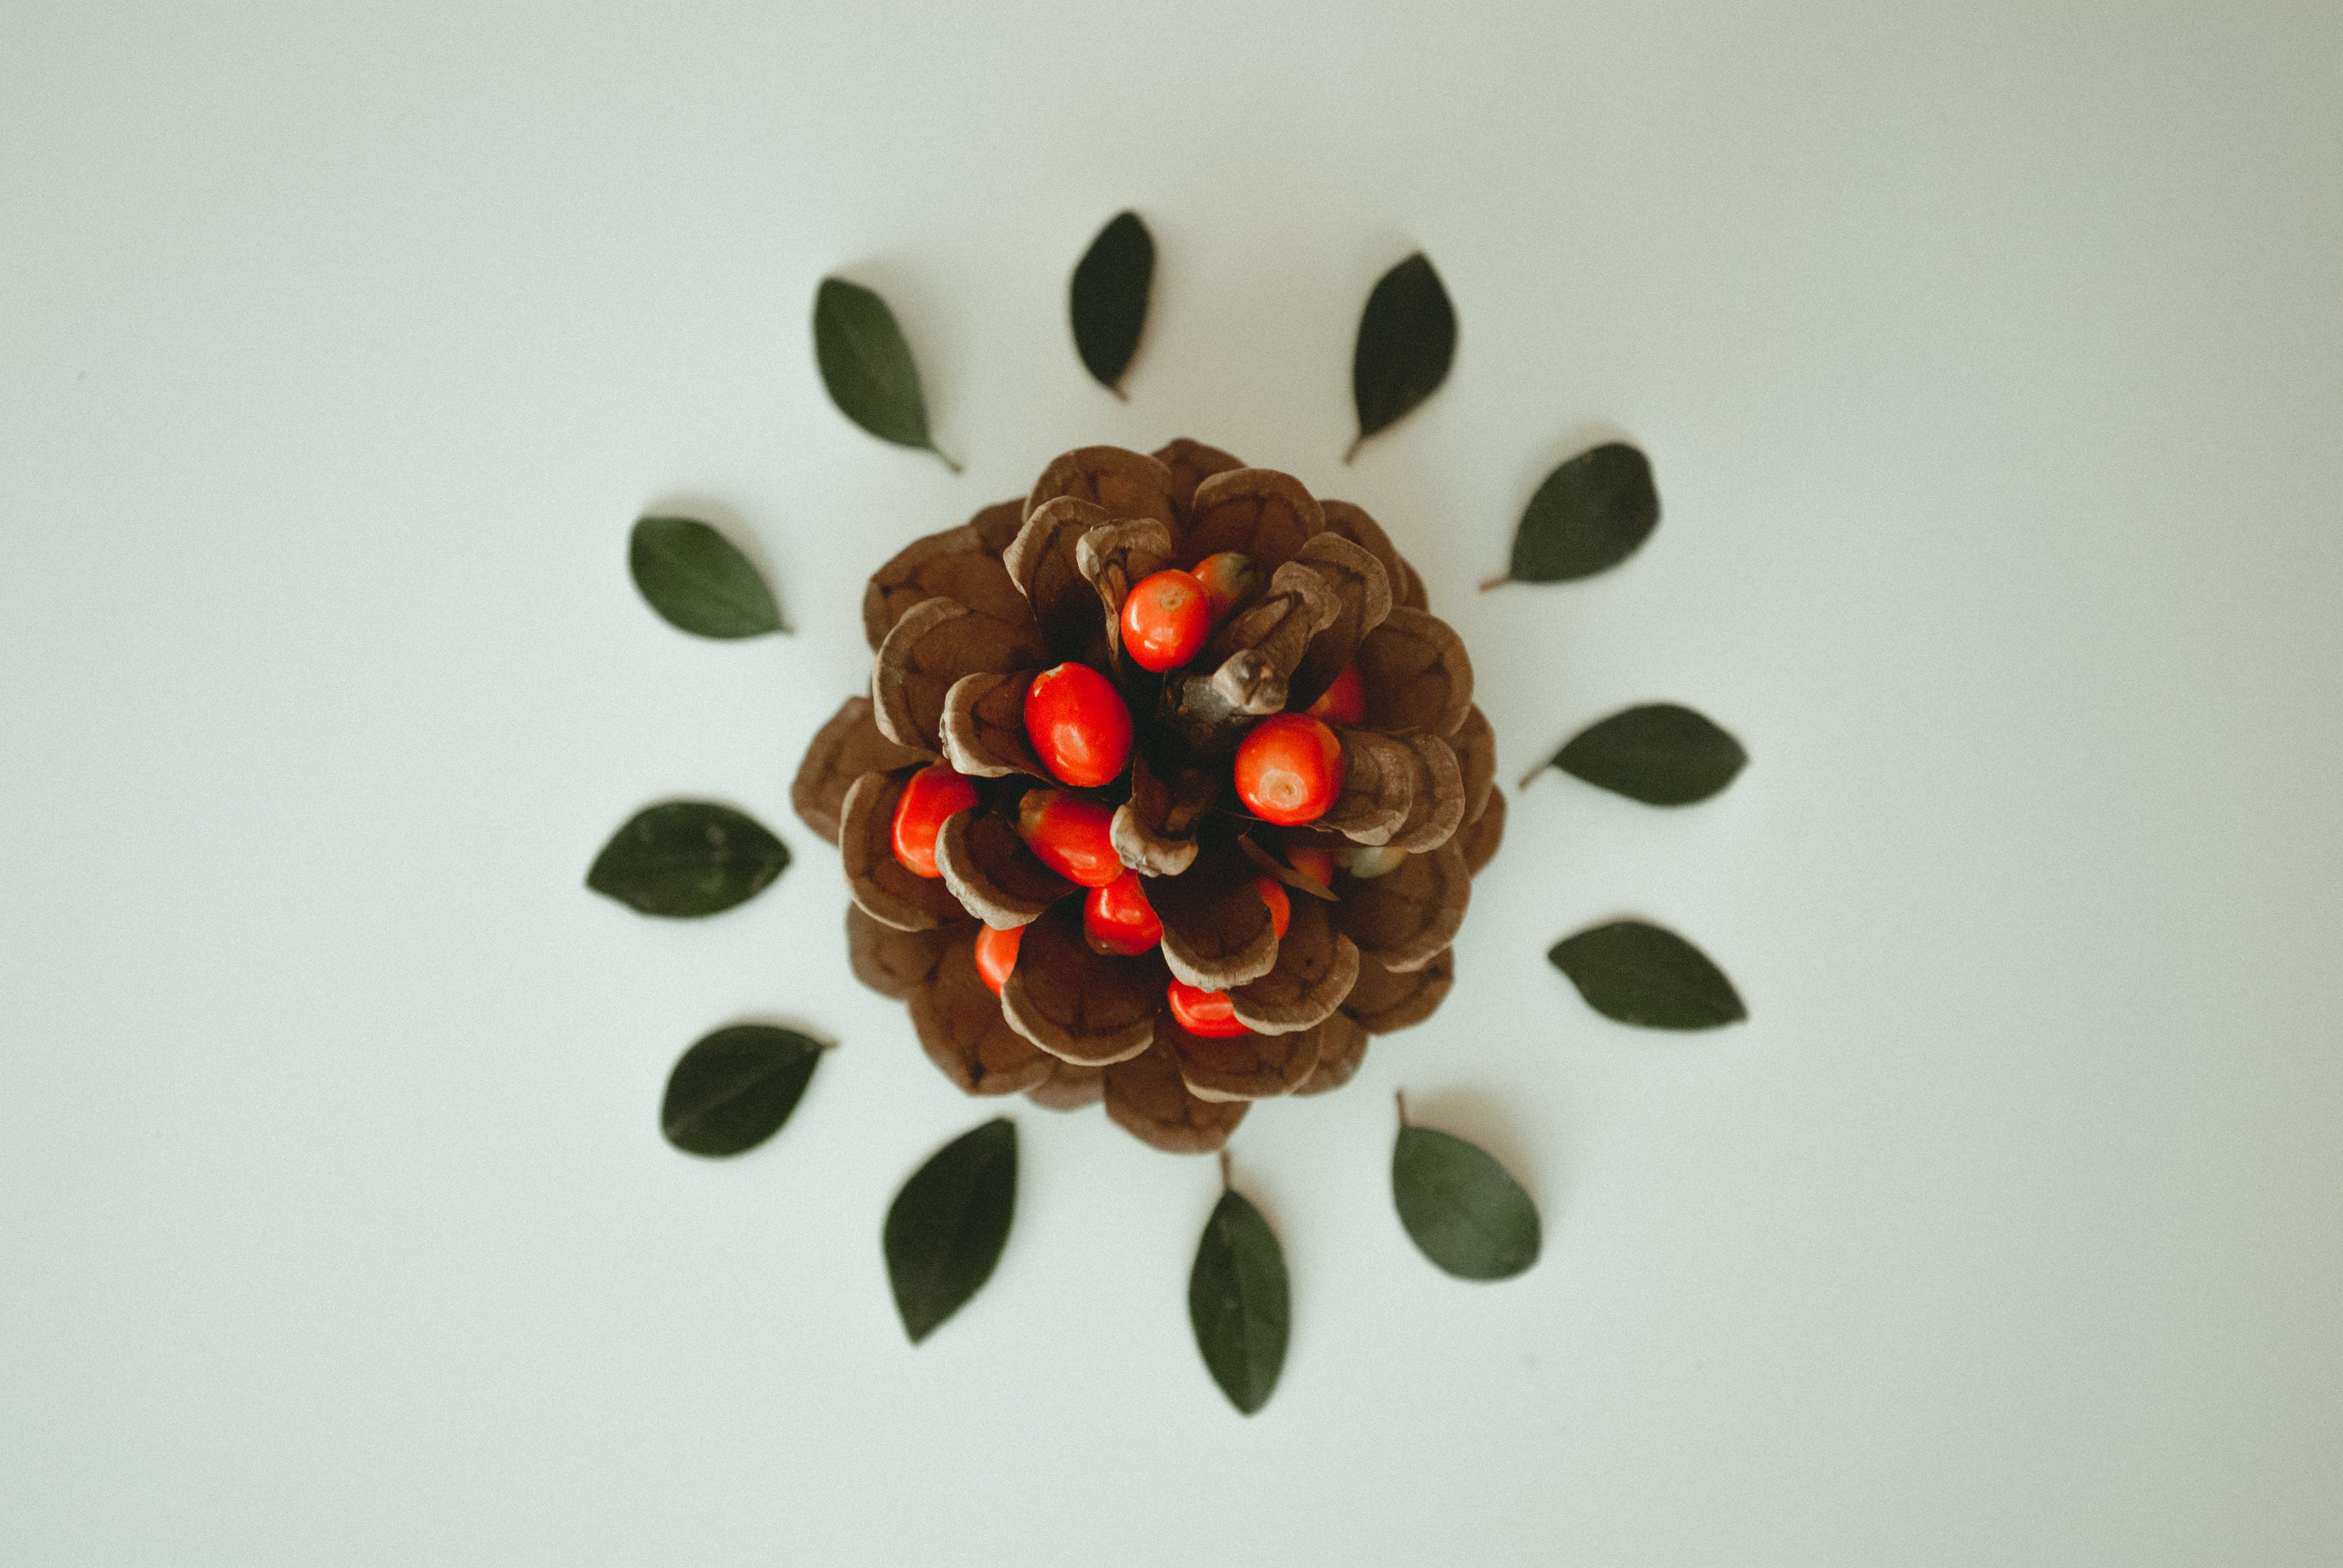 Pine Cone With Cherry Tomatoes